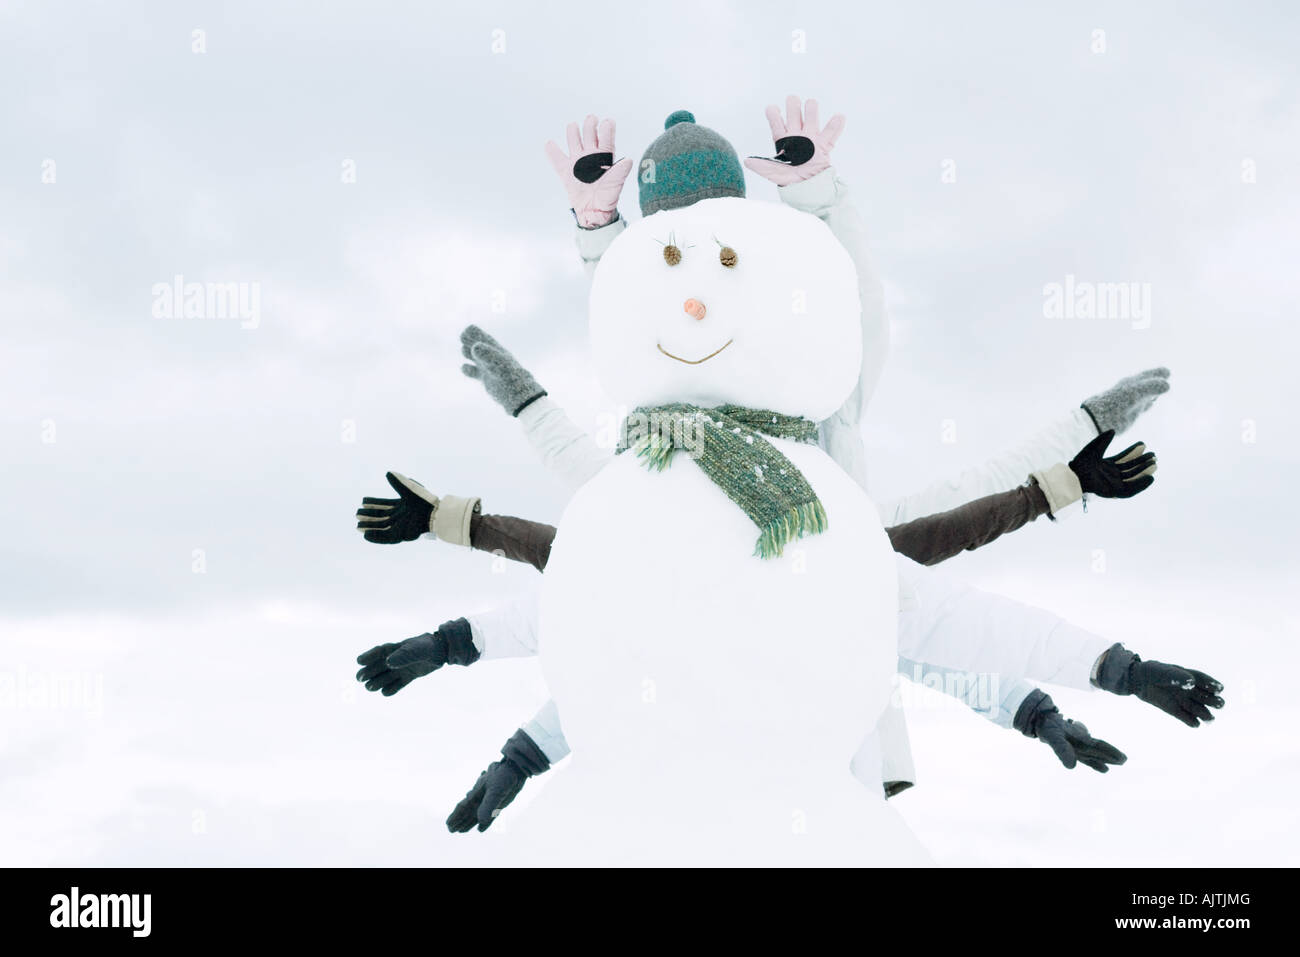 Snowman, several people's arms emerging from behind - Stock Image